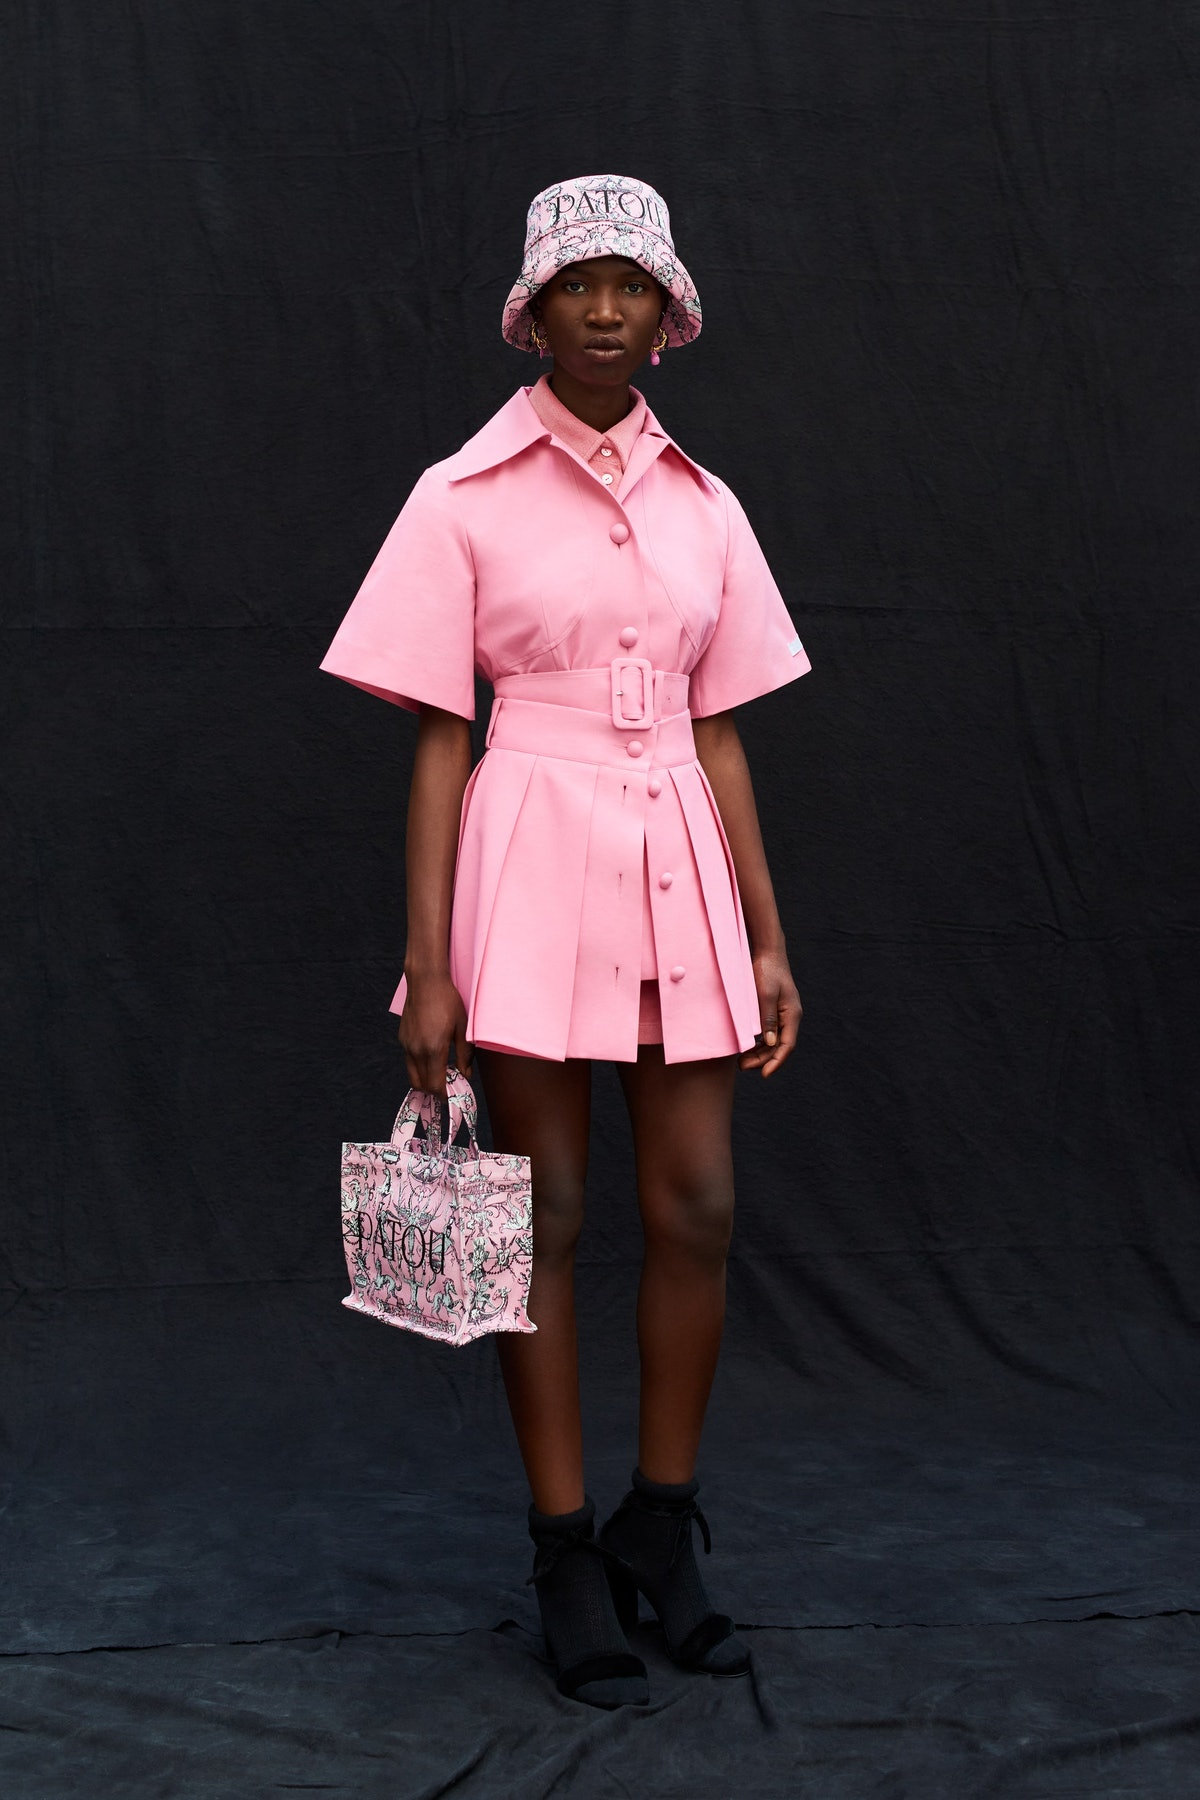 Model wears pink dress and hat from Patou's spring 2022 collection.